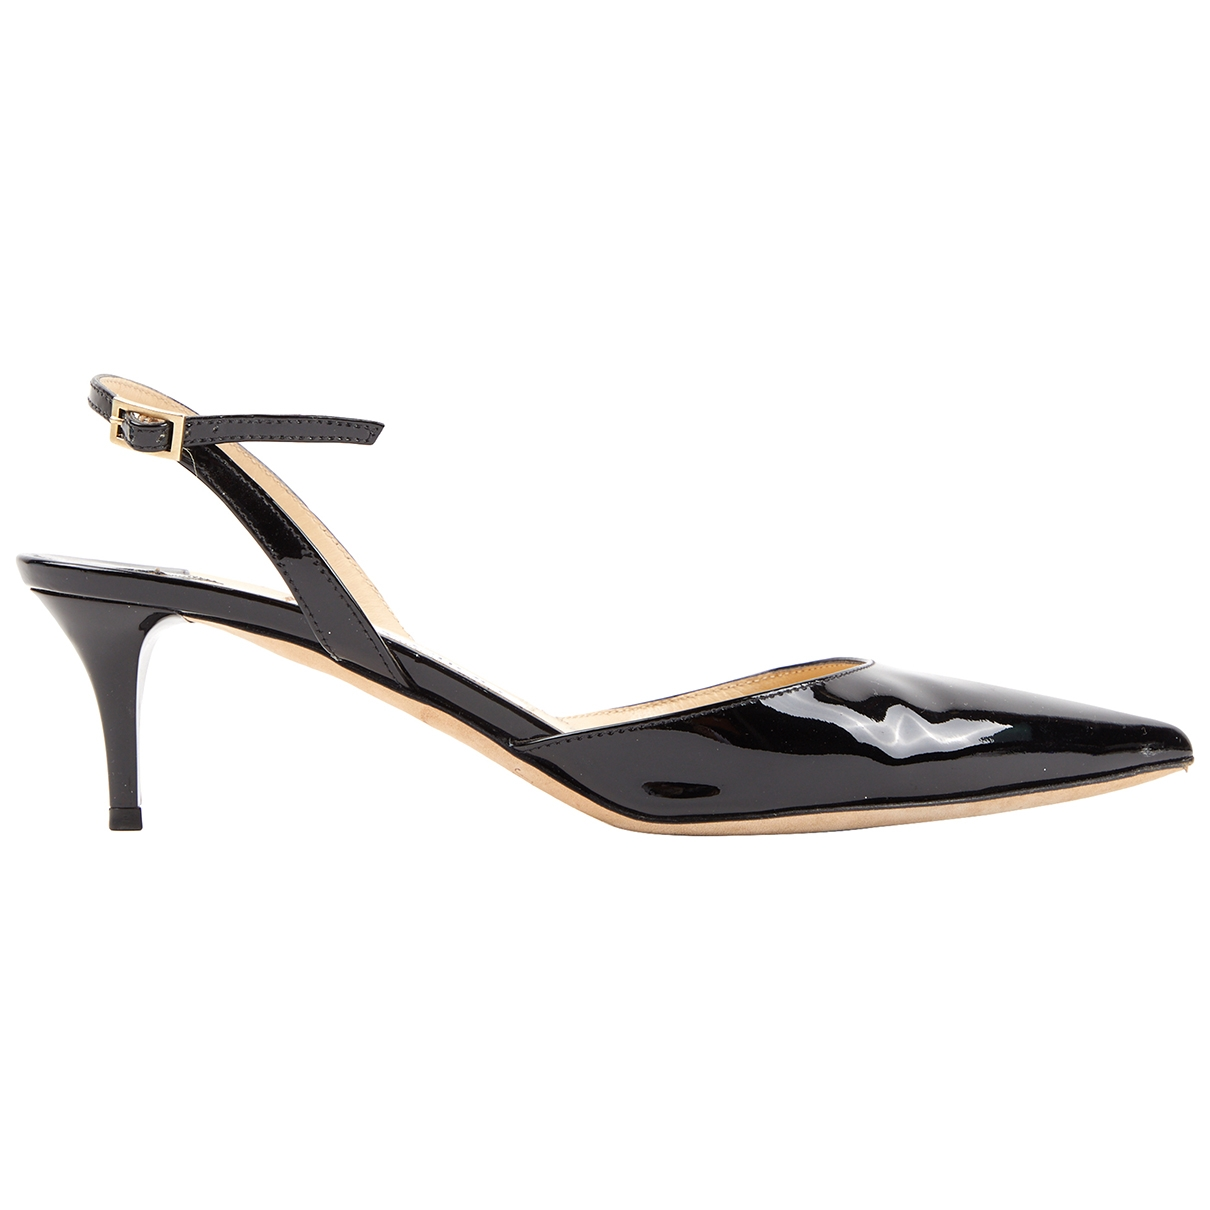 Jimmy Choo \N Black Patent leather Heels for Women 37.5 EU